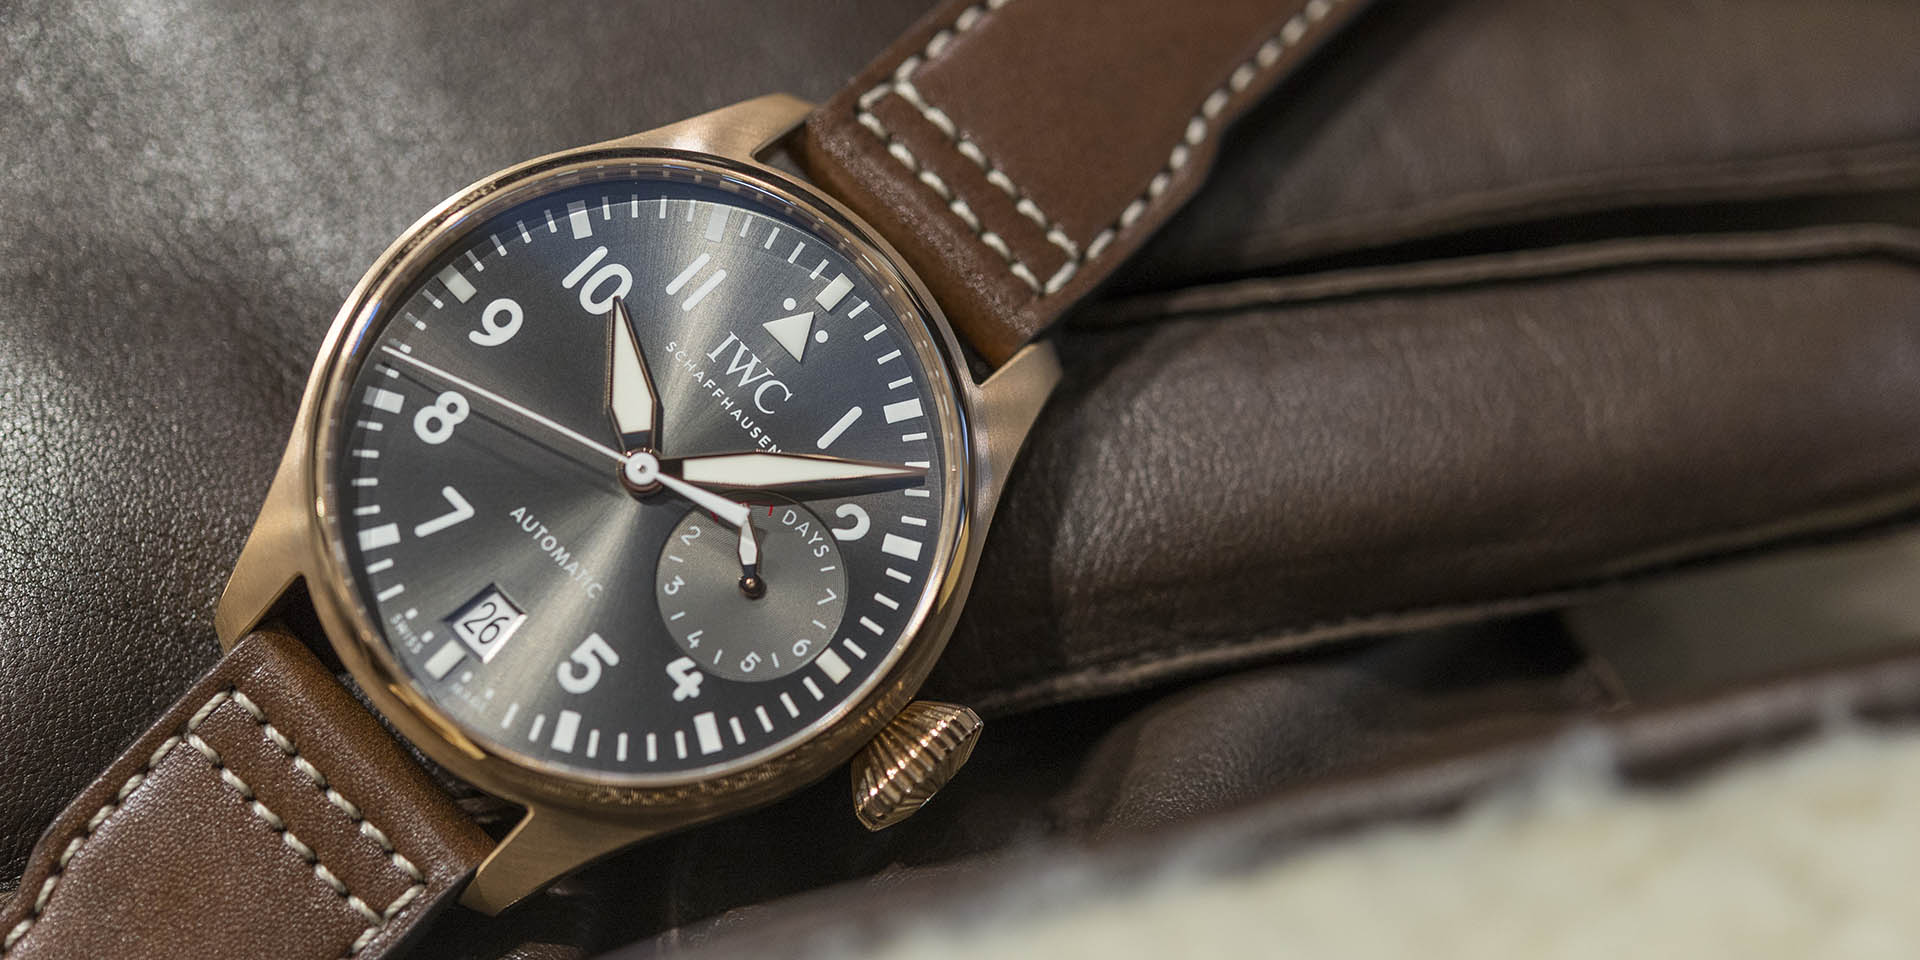 iwc-big-pilot-s-watch-iw500917.jpg